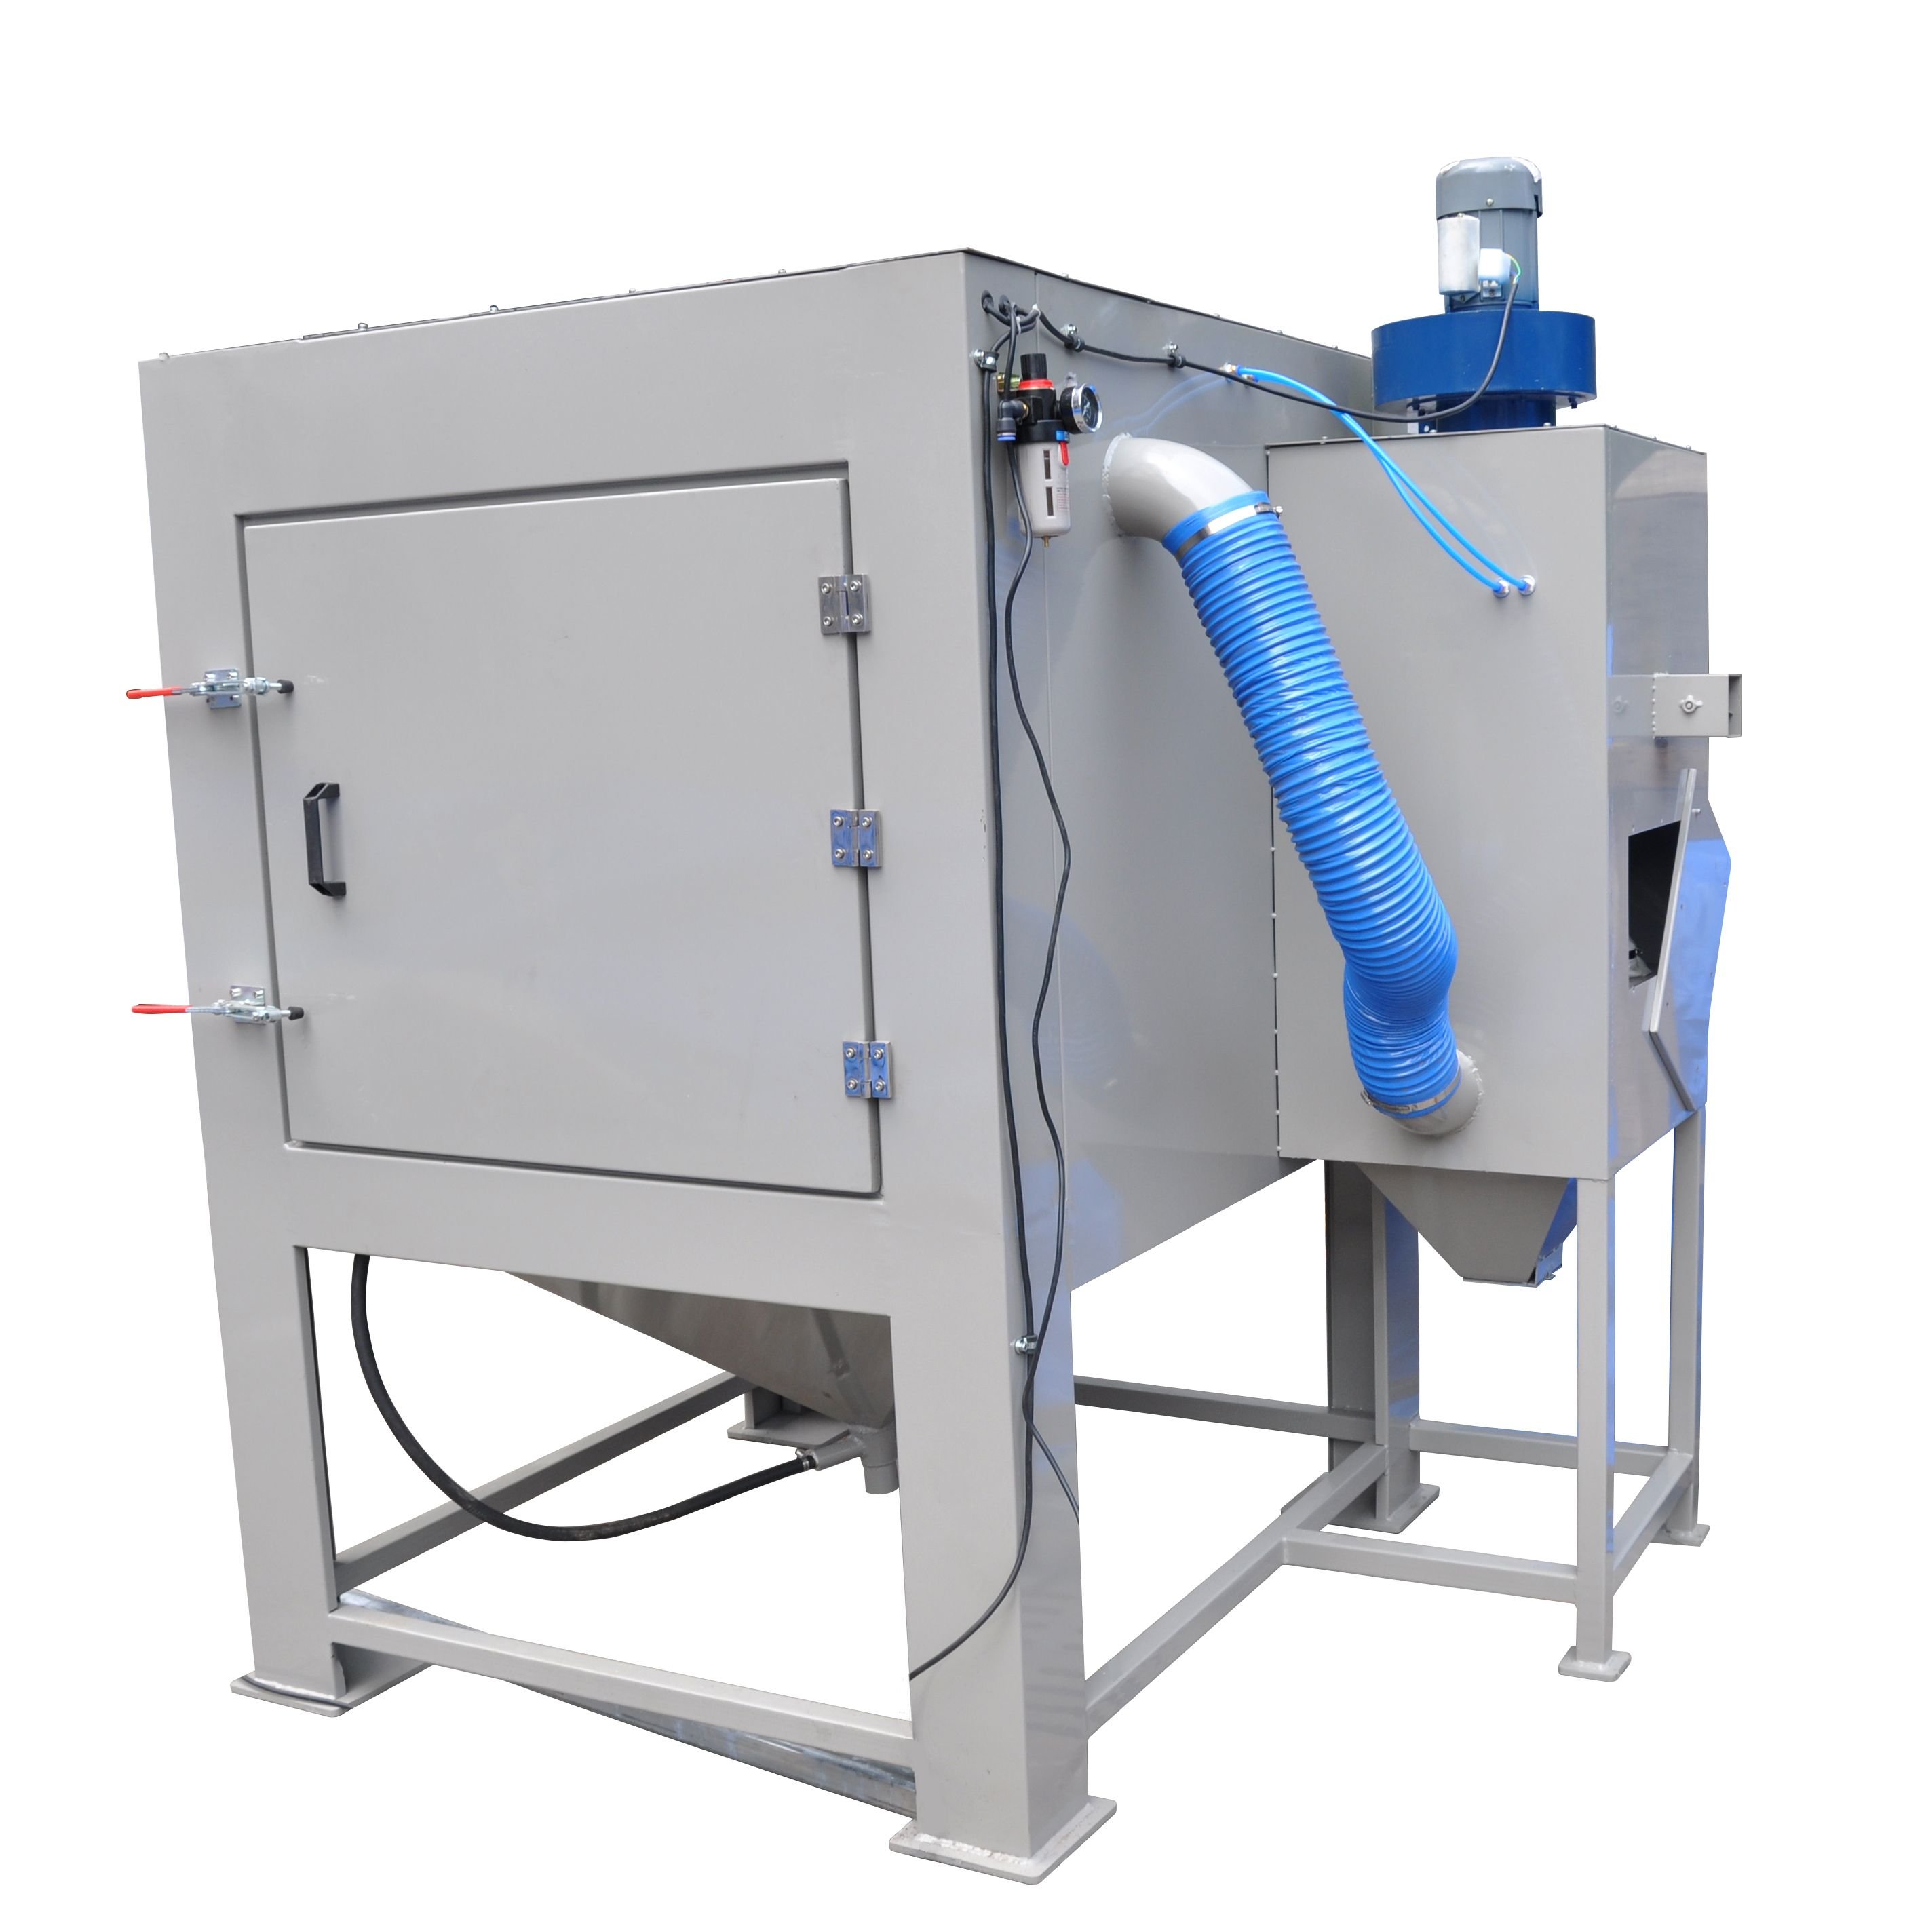 siphon blaster is equipped with cartridge filter duct collector